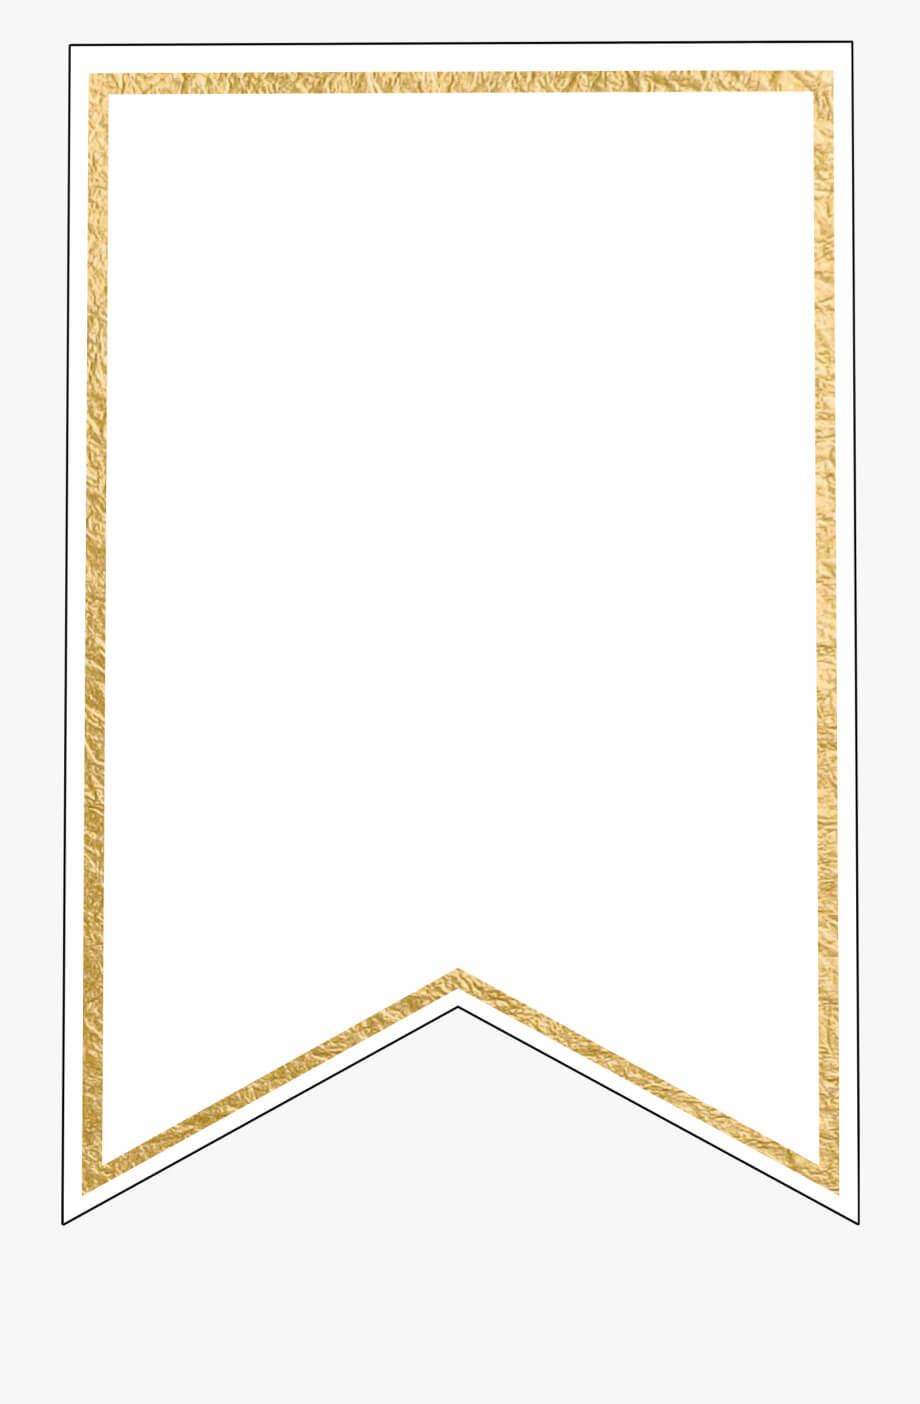 Free Pennant Banner Template, Download Free Clip Art, - Gold for Free Printable Pennant Banner Template